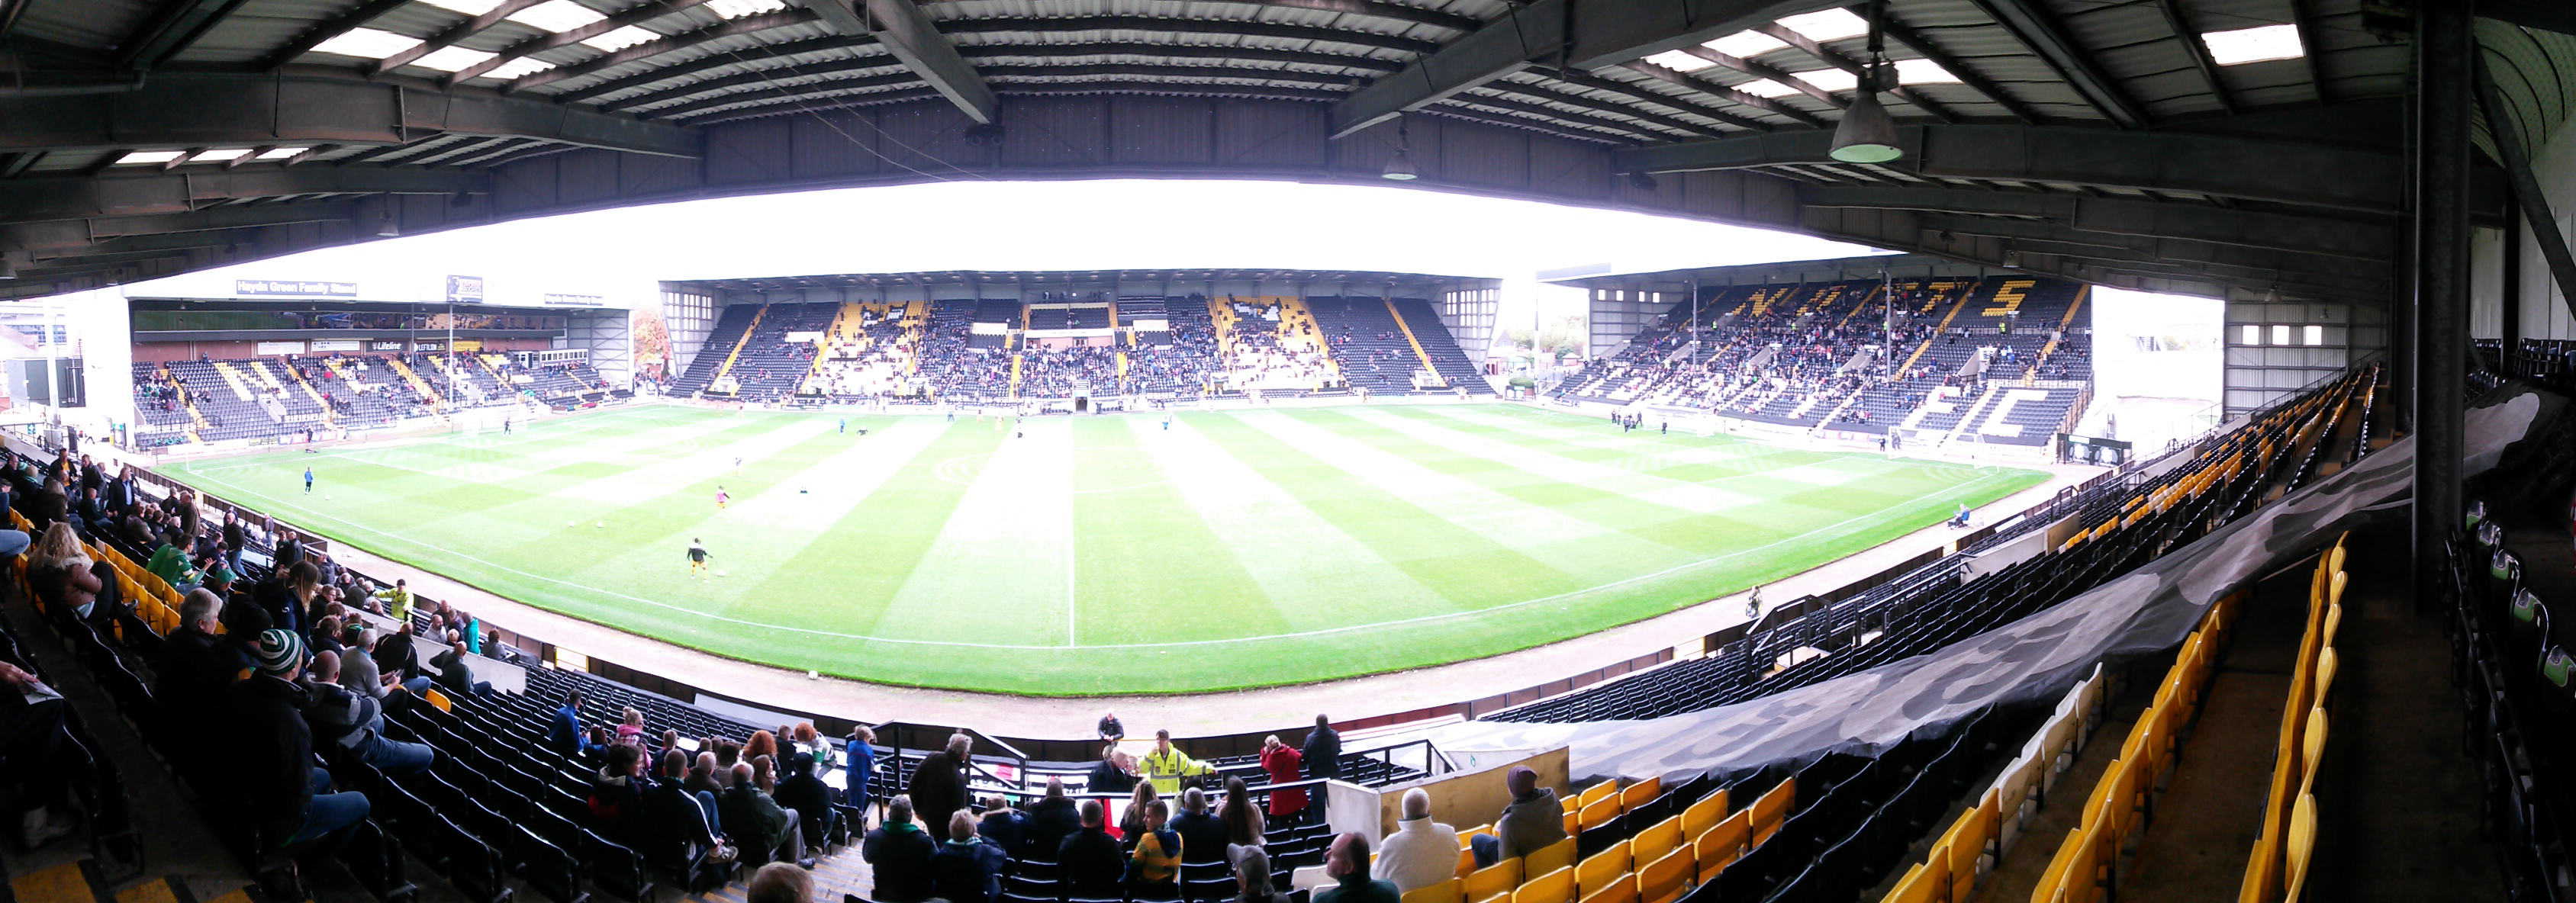 panoramic of meadow lane notts county